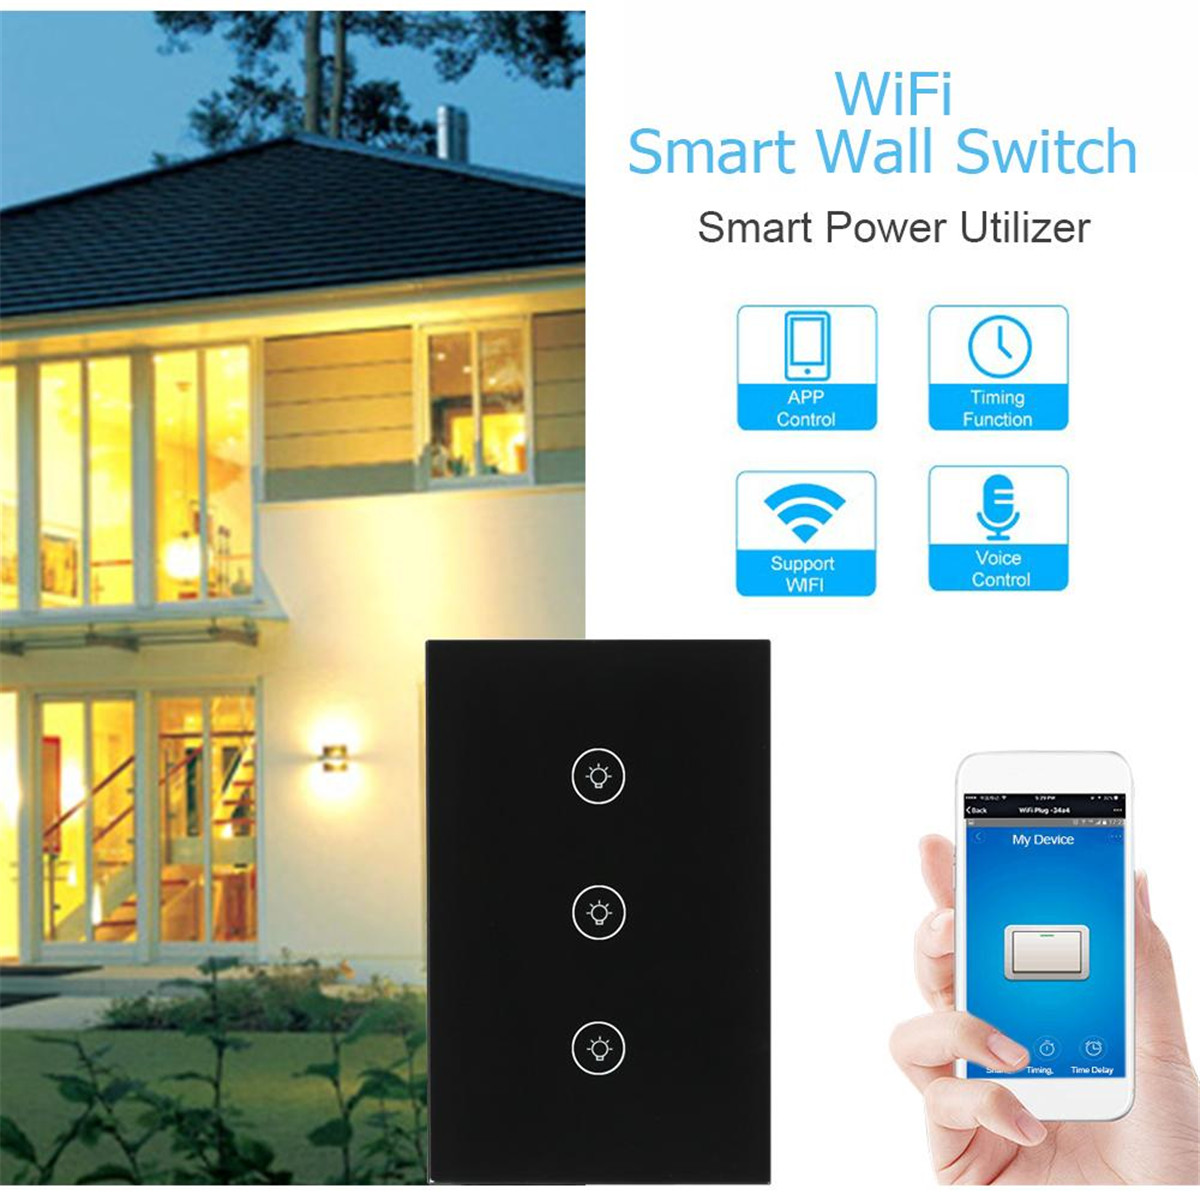 WiFi Smart Light Switch 1/2/3 Gang EU/UK/US Plug App Remote Control Wall Switch Work with Alexa/Google Black Intelligent Safety sonoff t1 us smart touch wall switch 1 2 3 gang wifi 315 rf app remote smart home works with amazon free ios and app ewelink